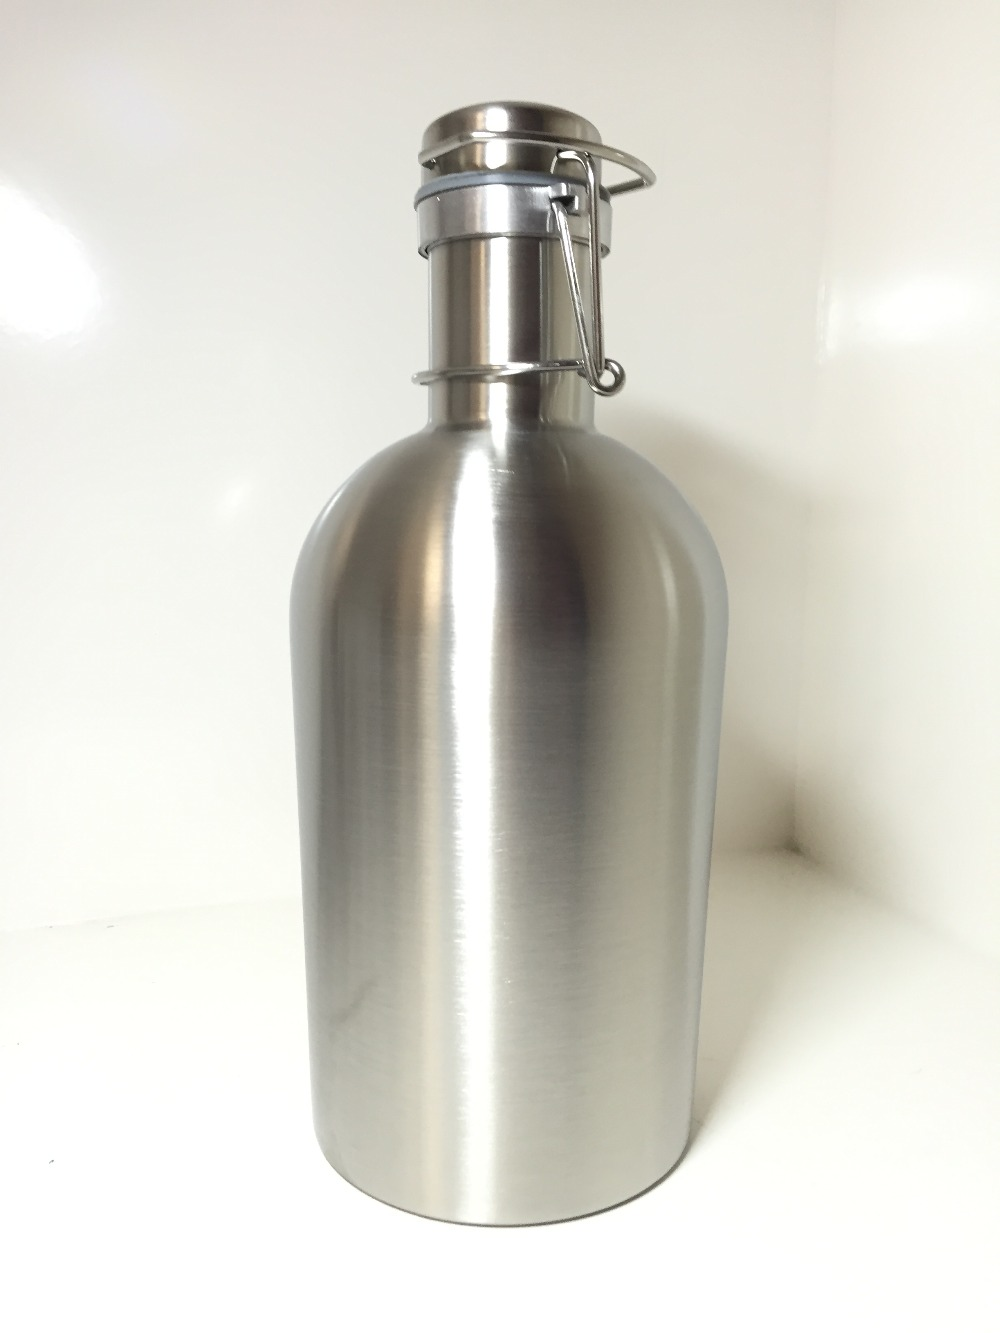 64 Best Ideas About Tarot The World On Pinterest: Stainless Steel Beer Growler 64 Oz,Swing Top Beer Growler